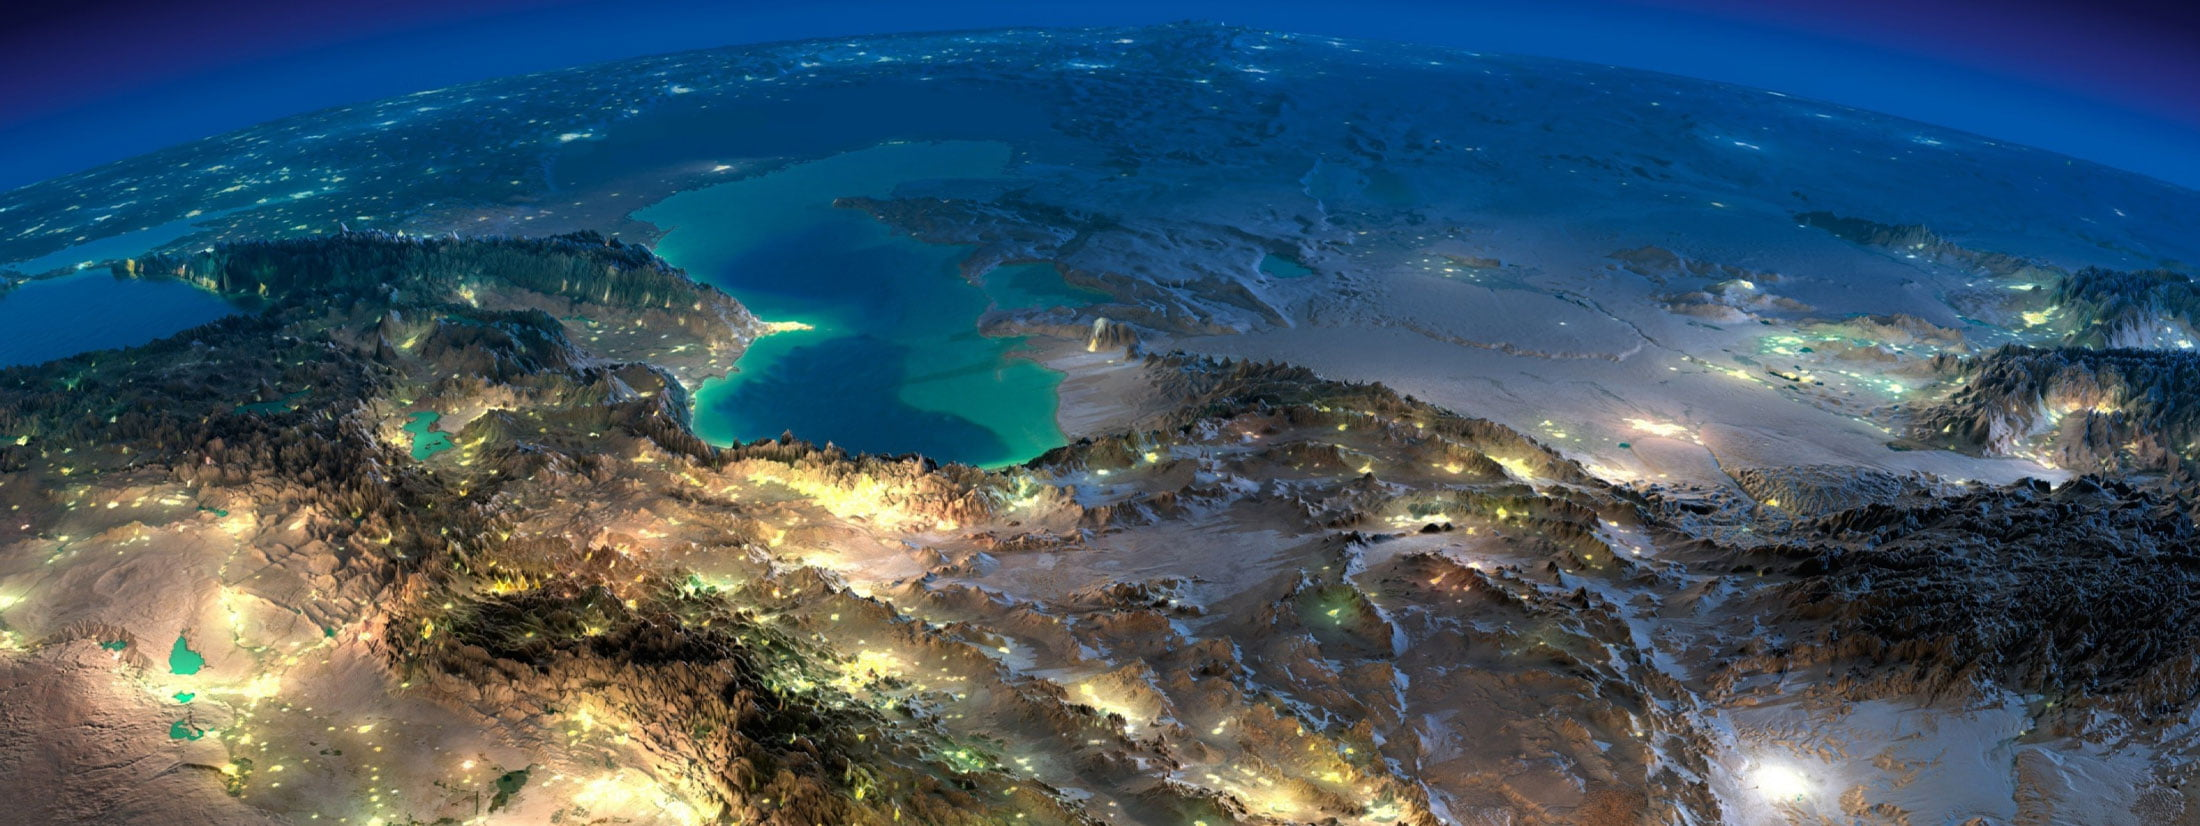 planet-earth-from-above-during-night-with-cities-emitting-light